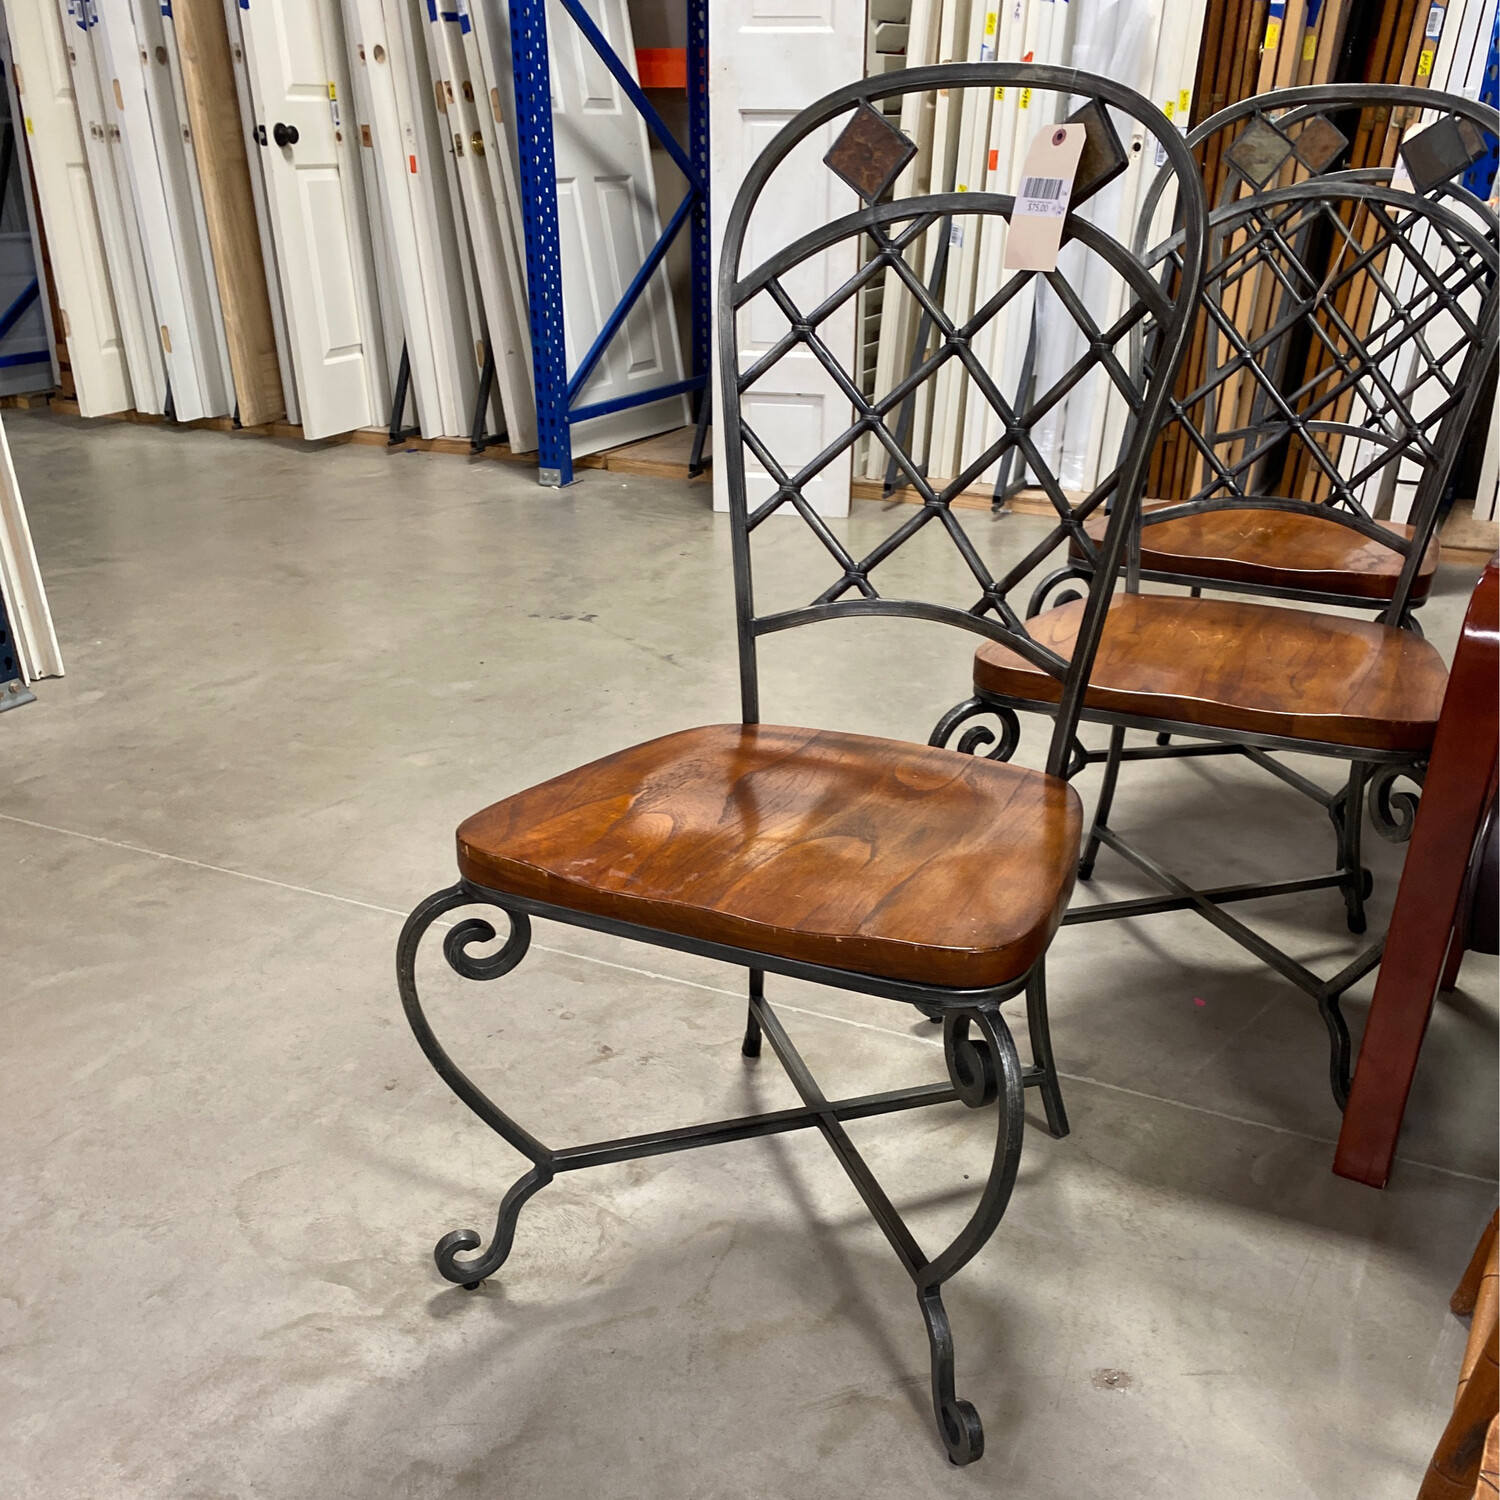 ORNATED DINING CHAIR